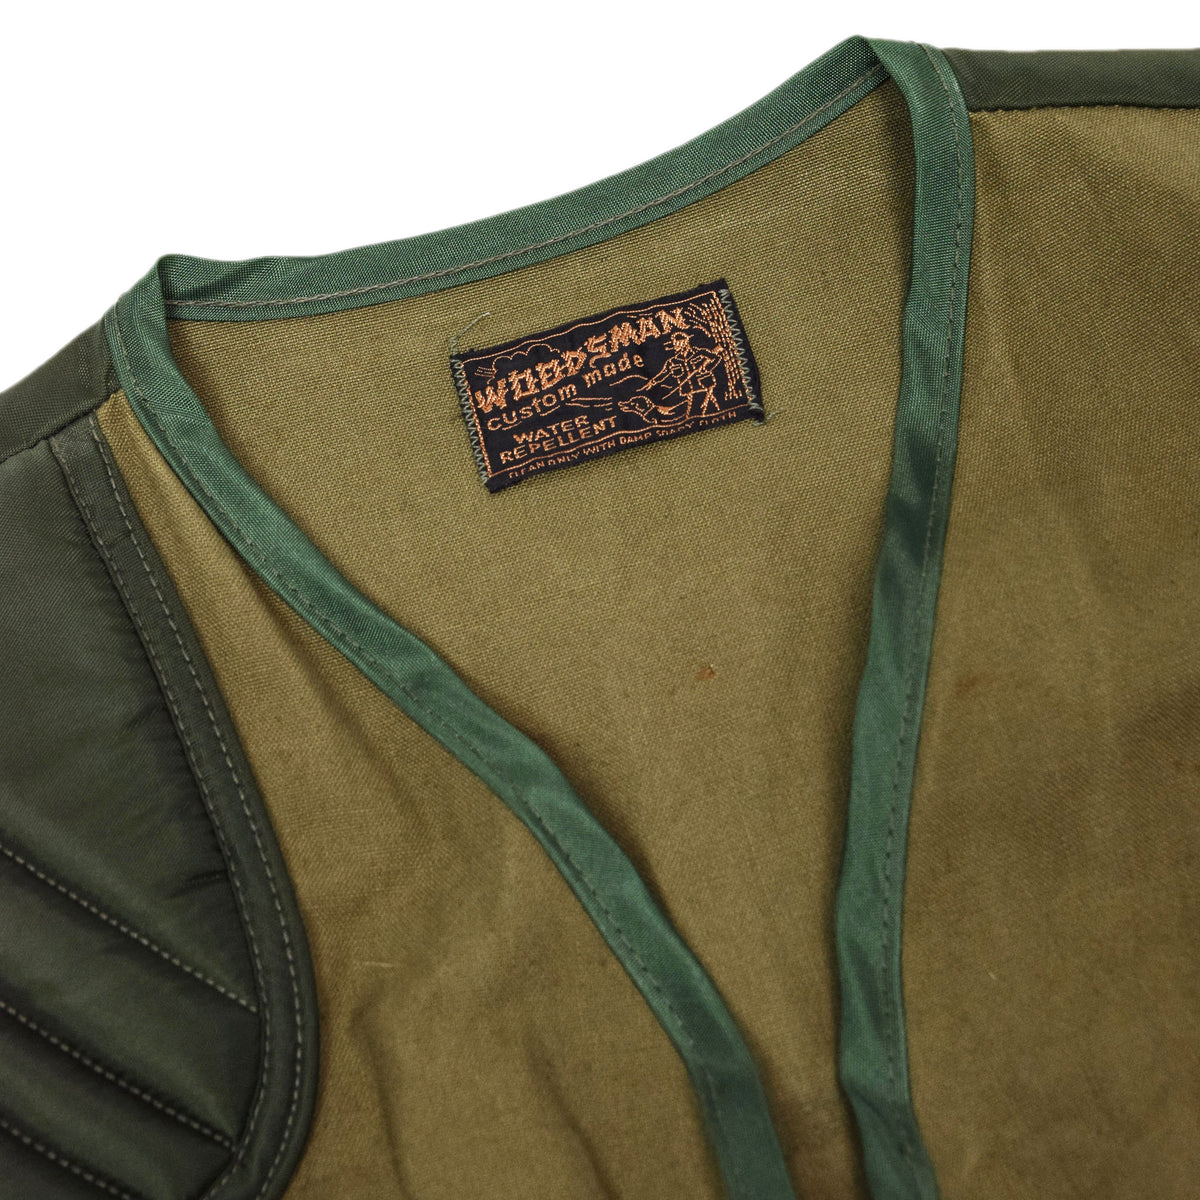 Vintage Woodsman Hunting Shooting Vest Waistcoat Green M / L label